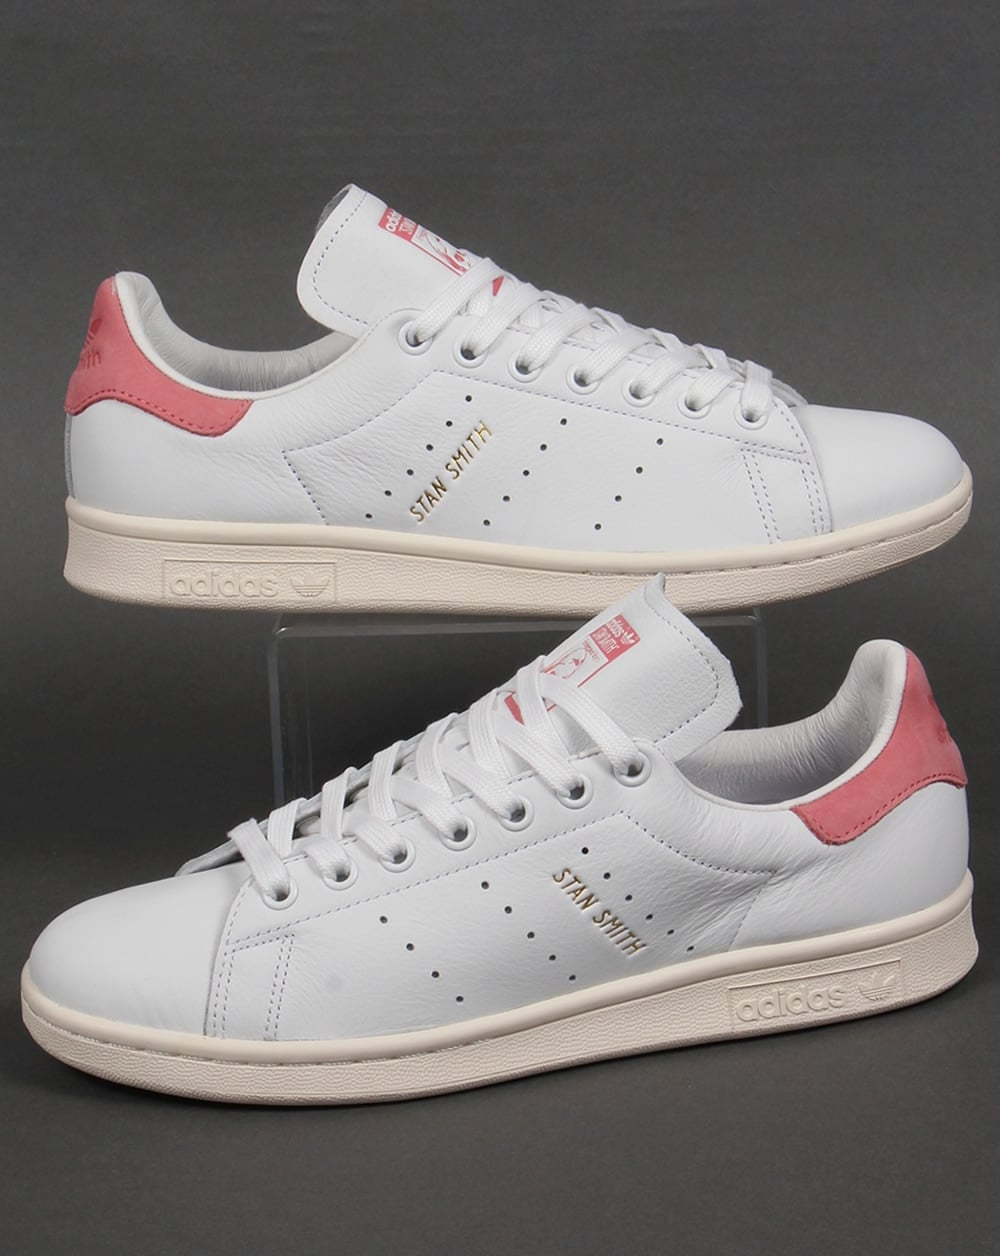 108577a88f0e40 adidas Trainers Adidas Stan Smith Trainers White Pink